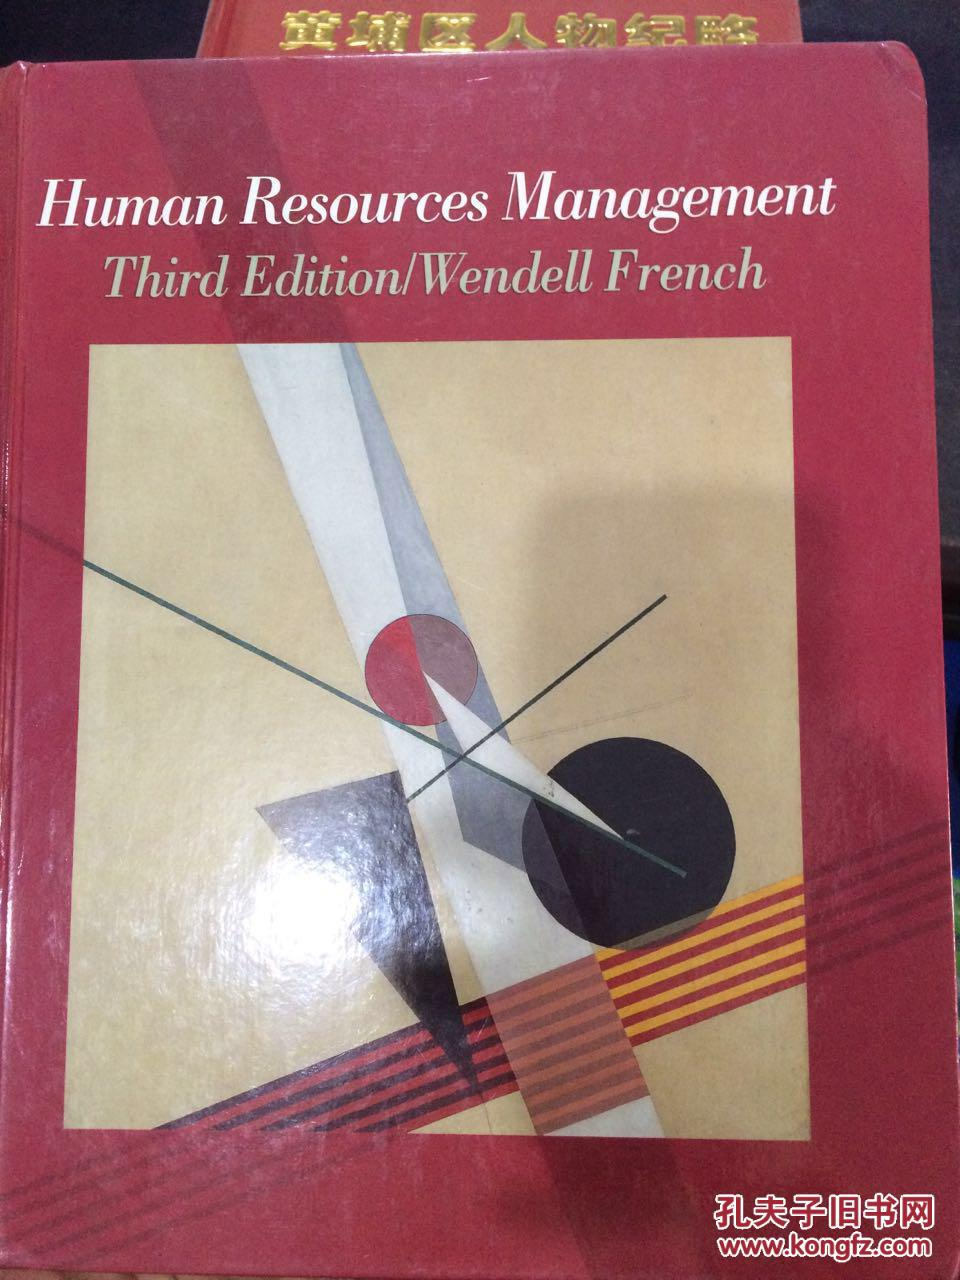 http://res.tongyi.com/resources/article/student/elementary/2011/tbwz/sjbyw/4s/24.files/image002.jpg_human resources management